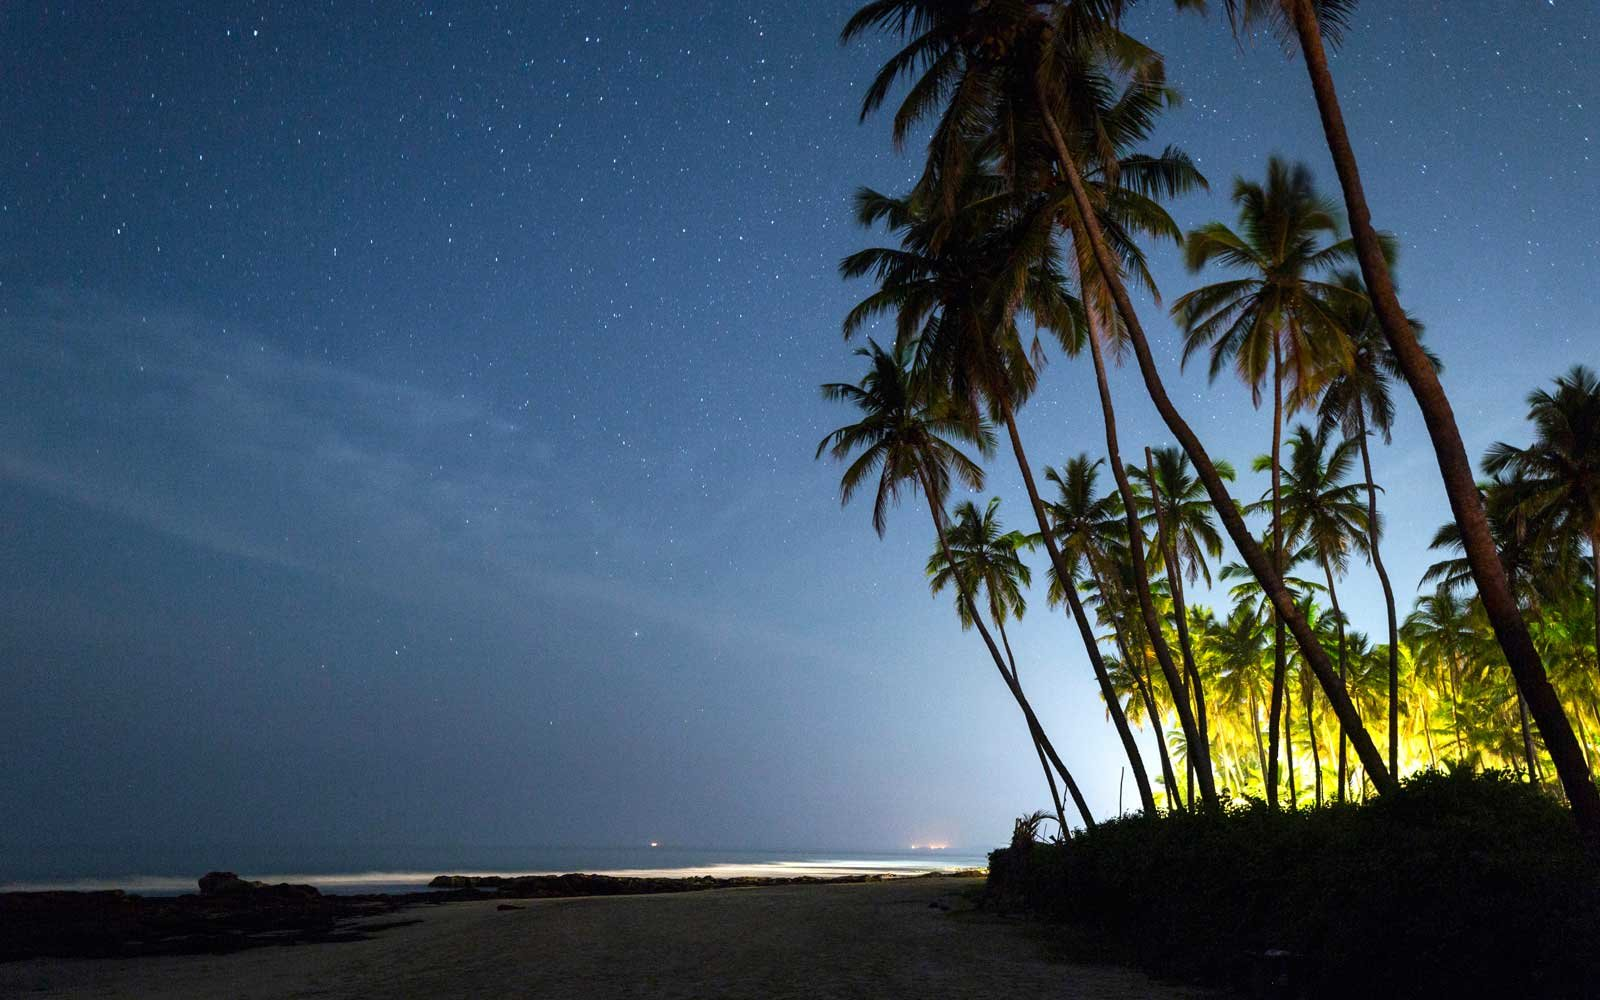 Night stars at Morjim Beach in Goa, India